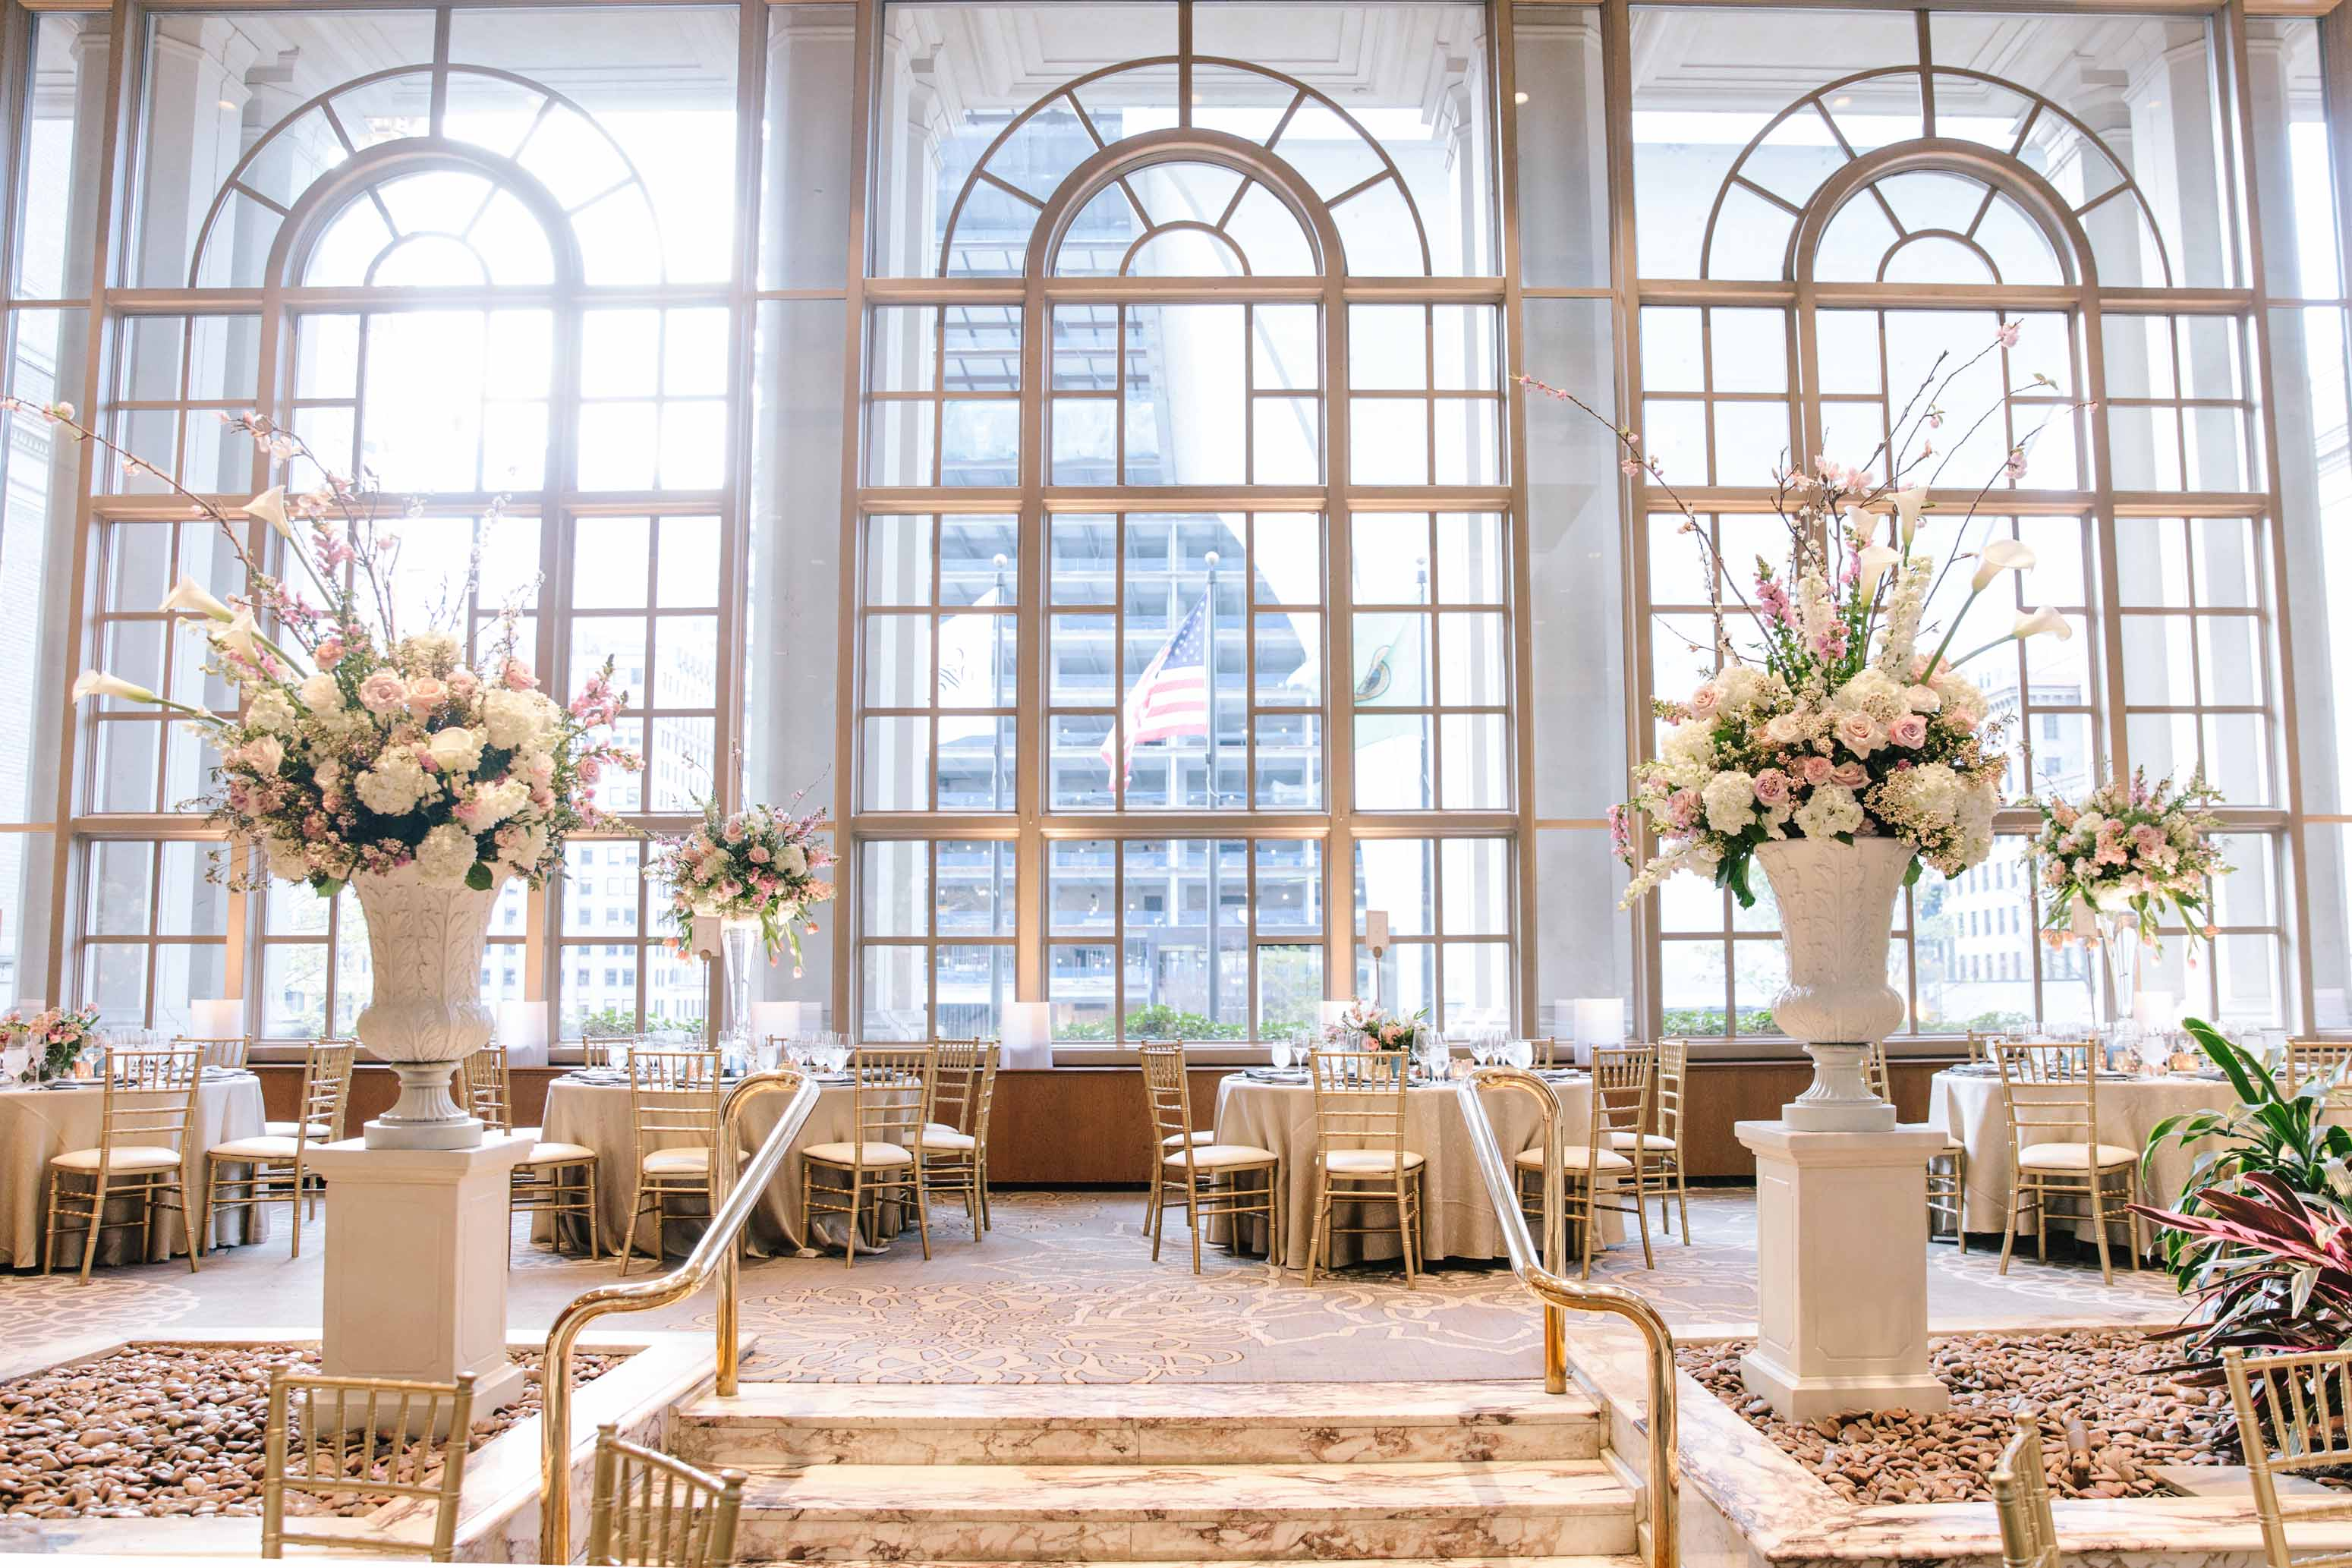 Tall spring centerpieces on tables in ballroom, in front of large conservatory windows